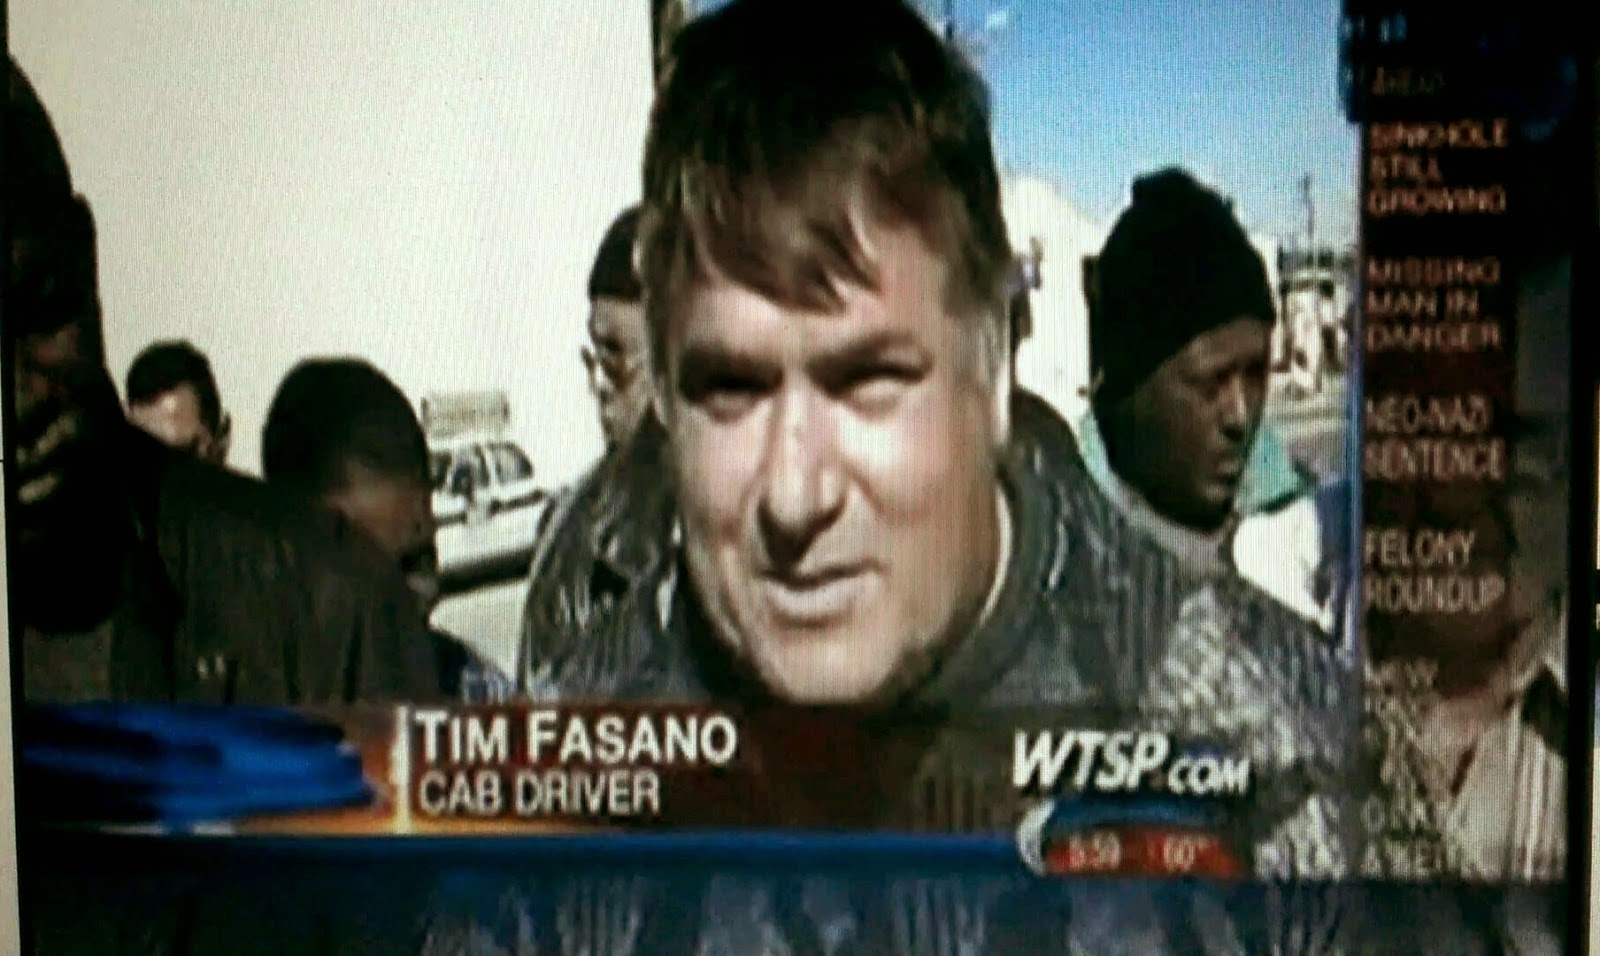 Tim Fasano On The Local News!